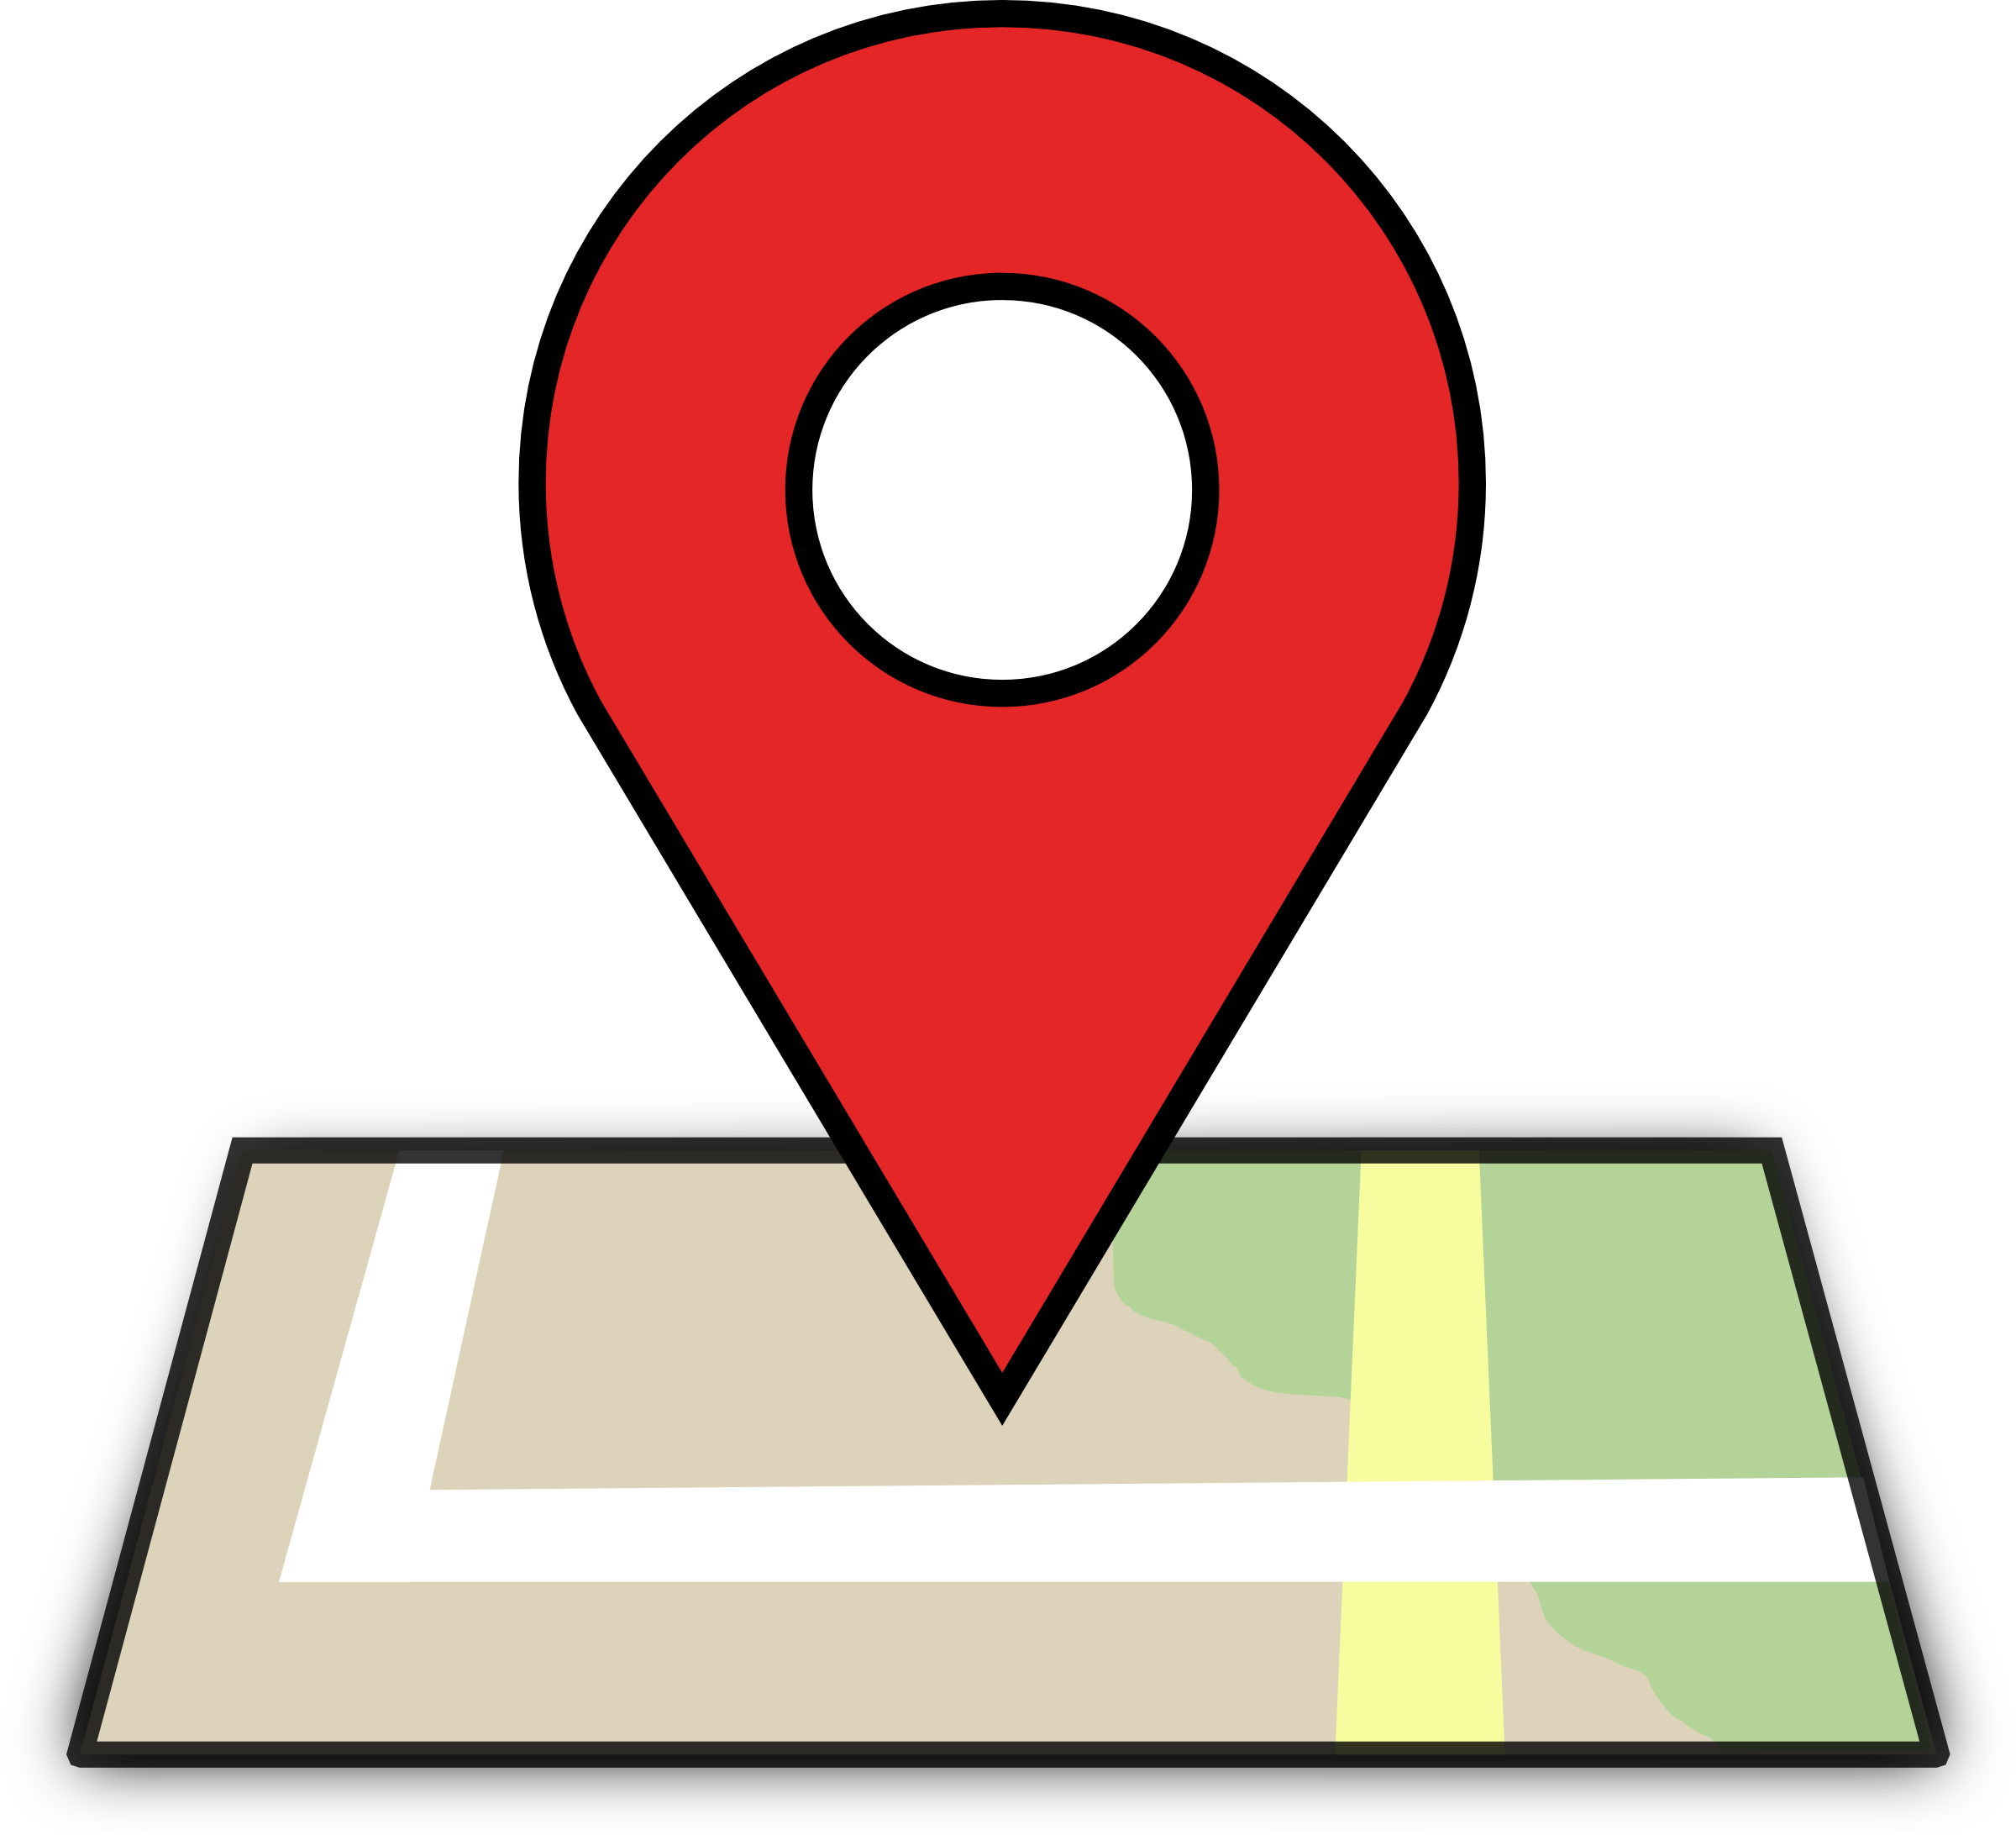 lokasi logo red map location icon map png #25356